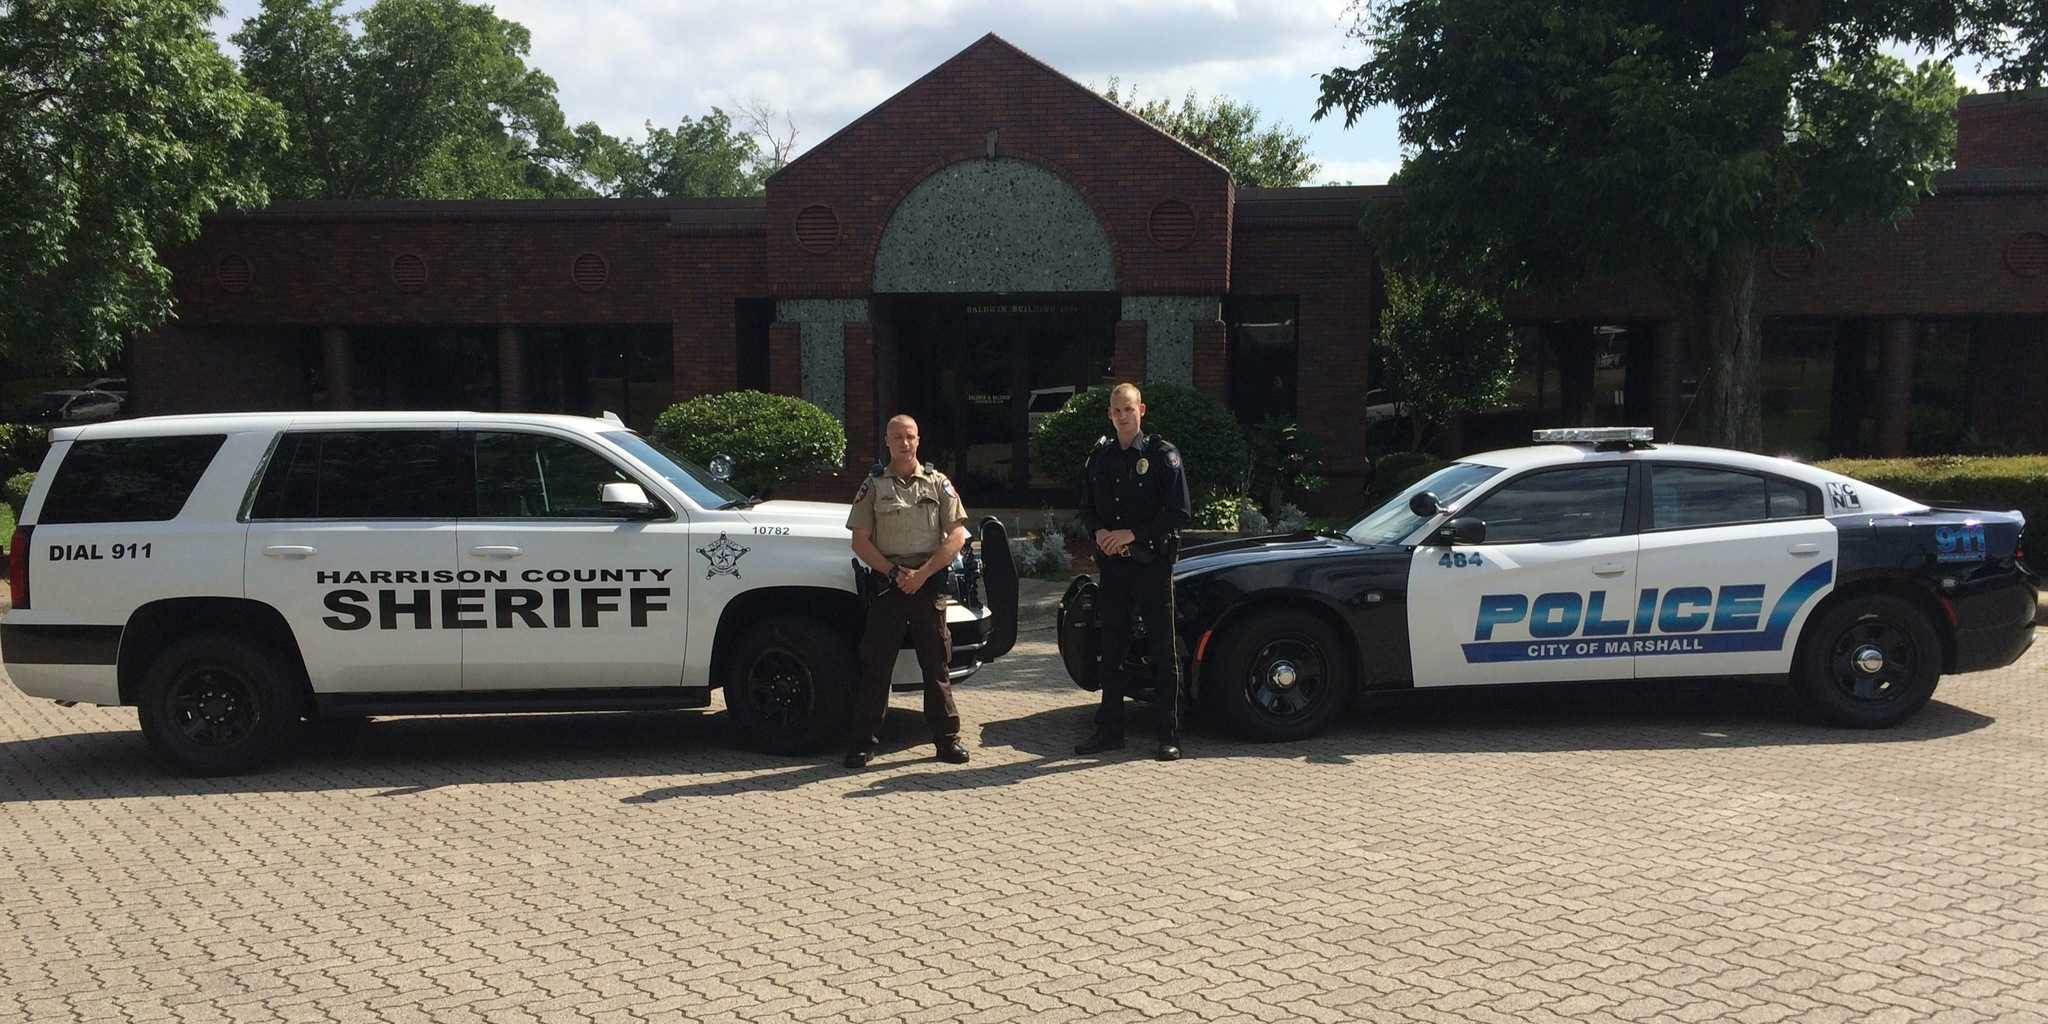 Marshall PD and Harrison County Sheriff's Office create DWI